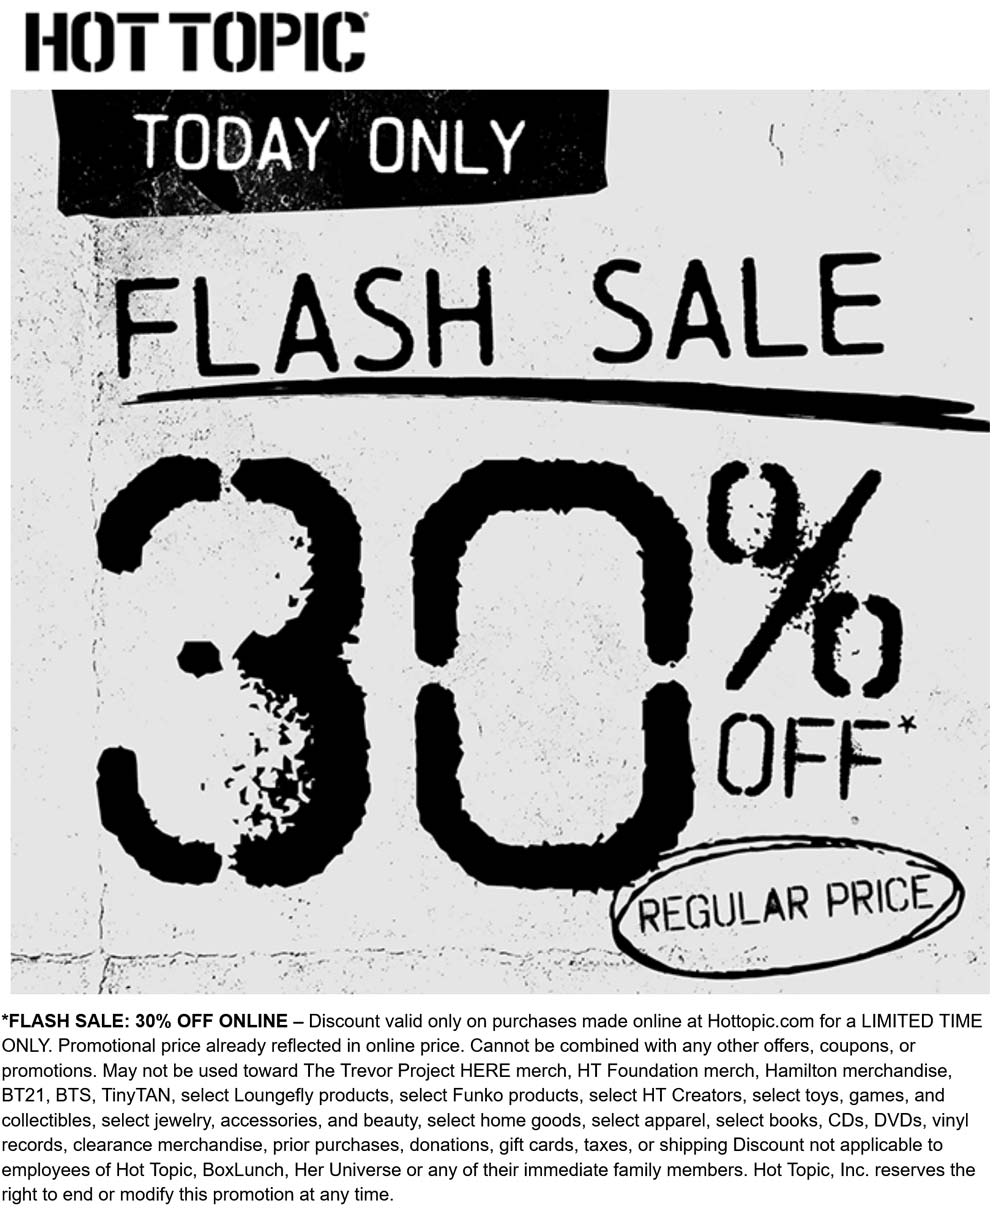 Hot Topic stores Coupon  30% off online today at Hot Topic #hottopic